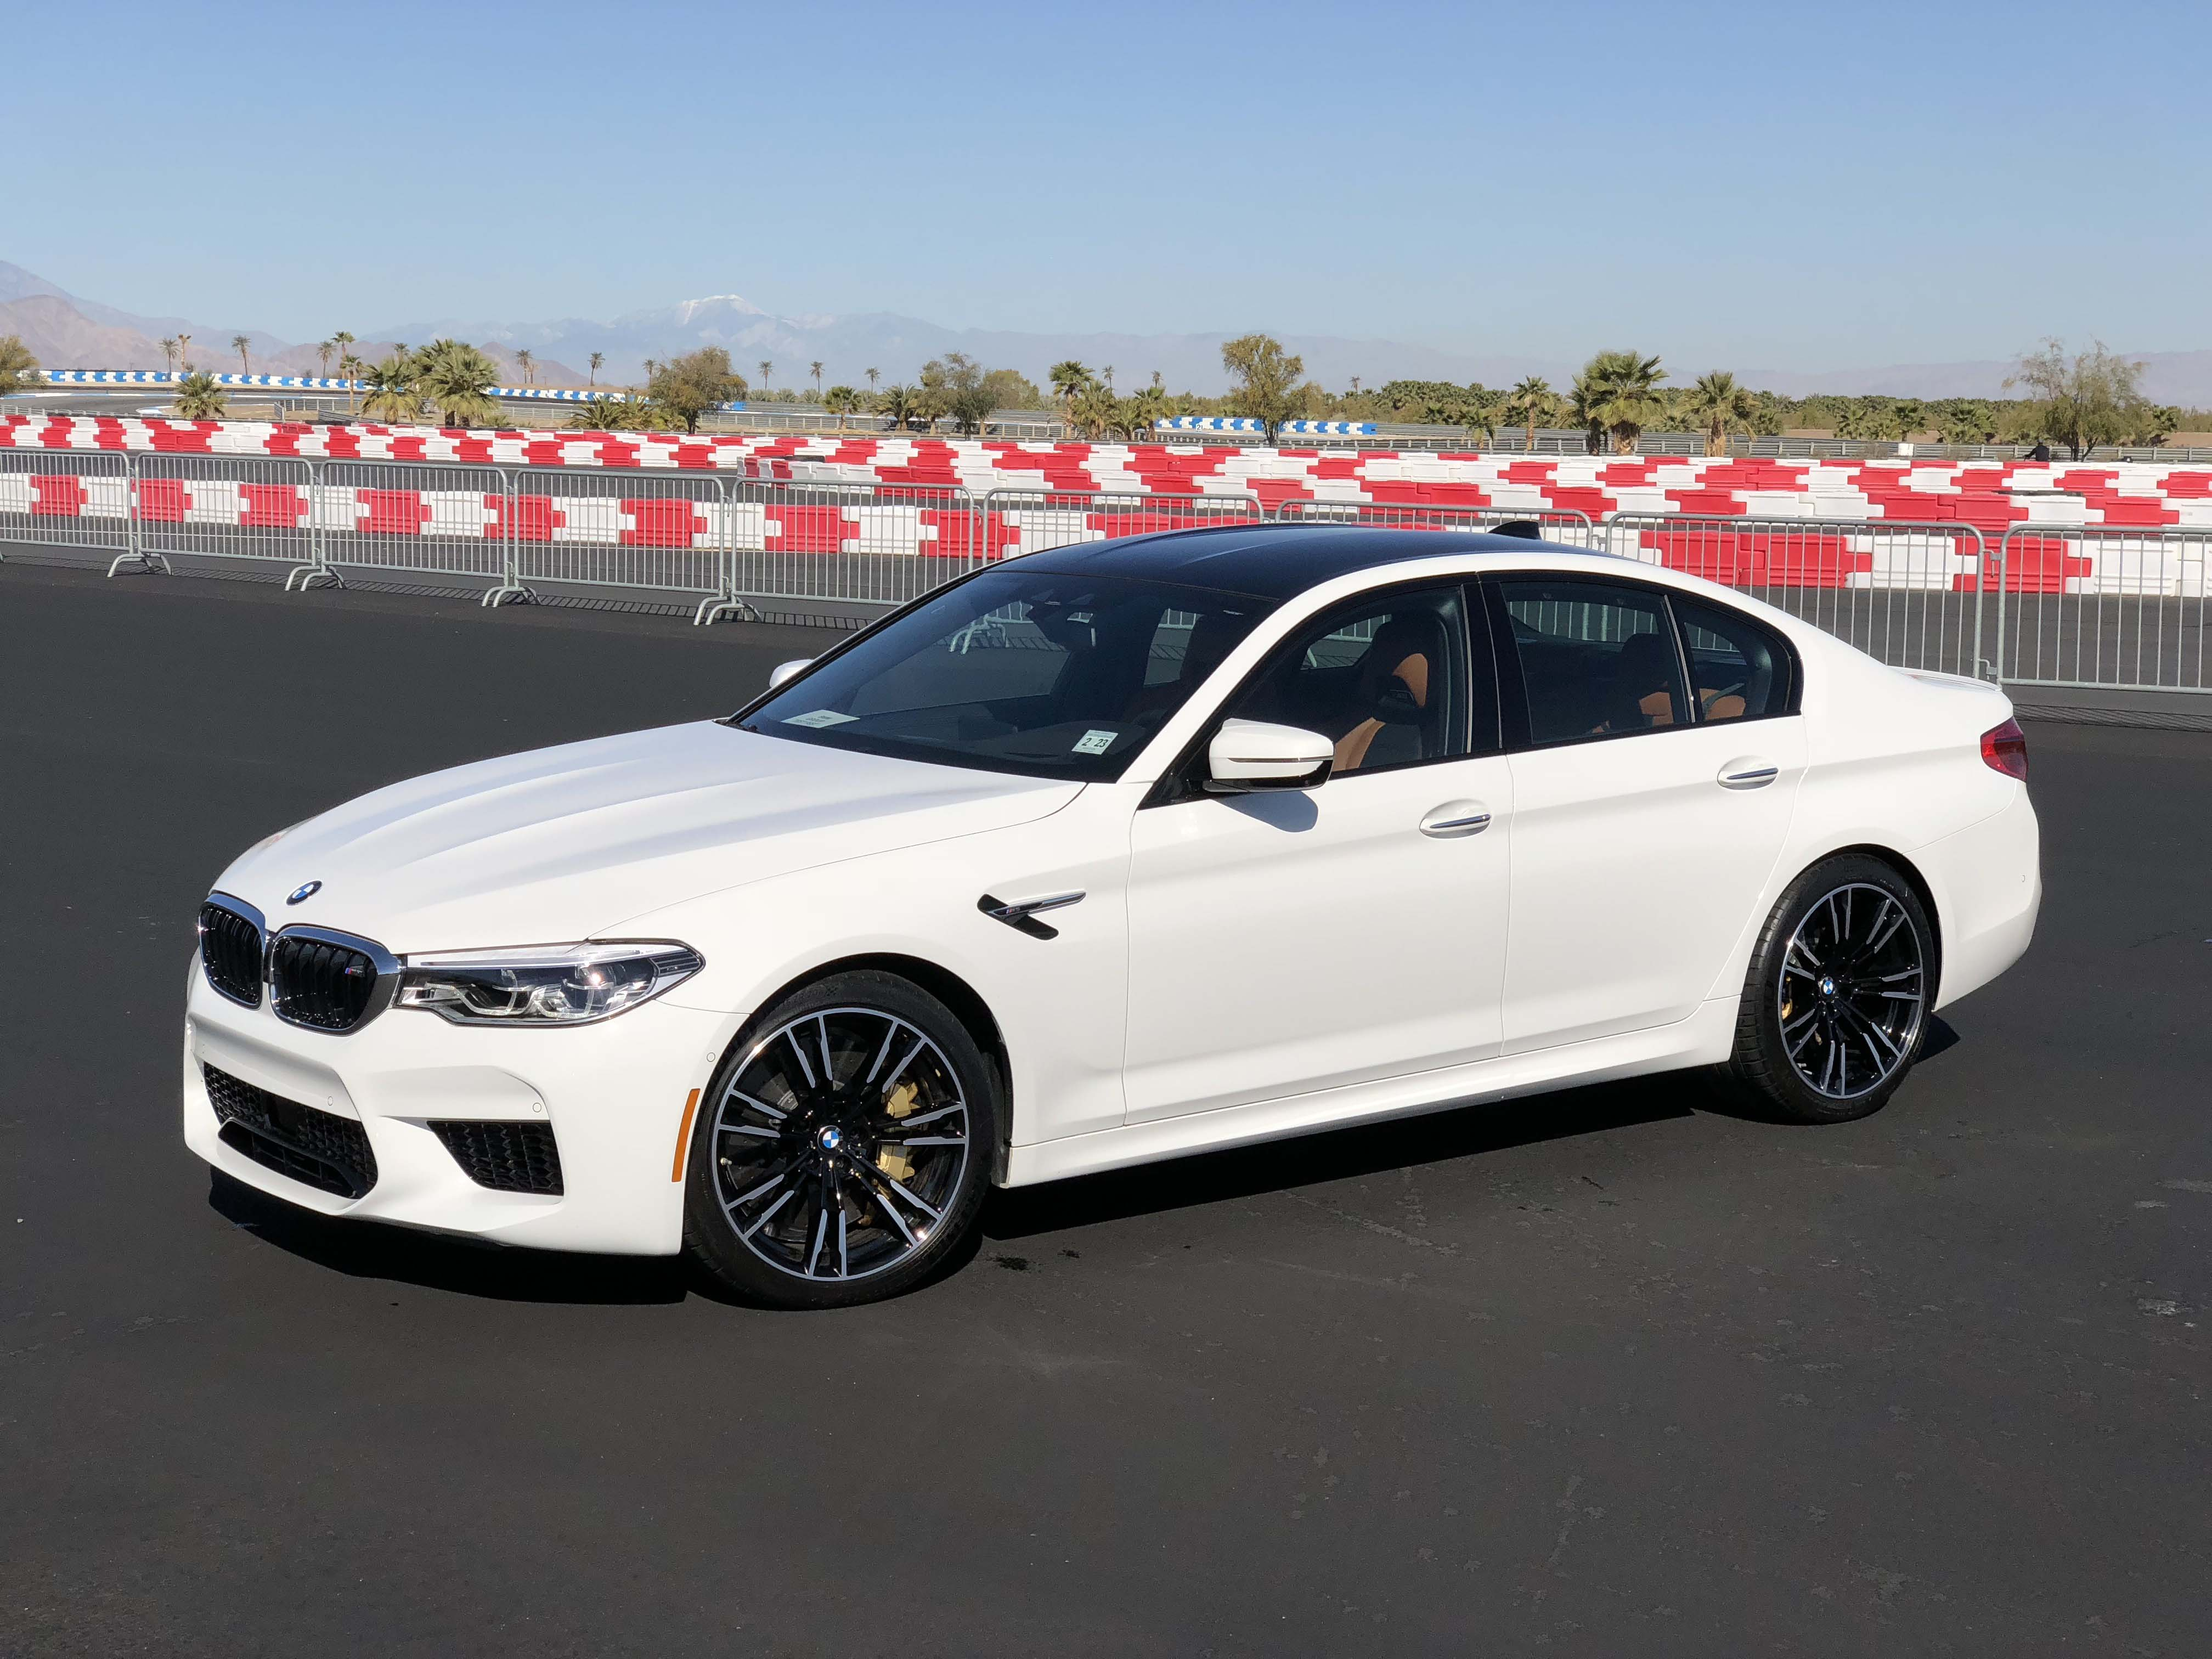 Bmw >> 2018 BMW M5 Sedan: The Bavarian Cyborg | AUTOMOTIVE RHYTHMS